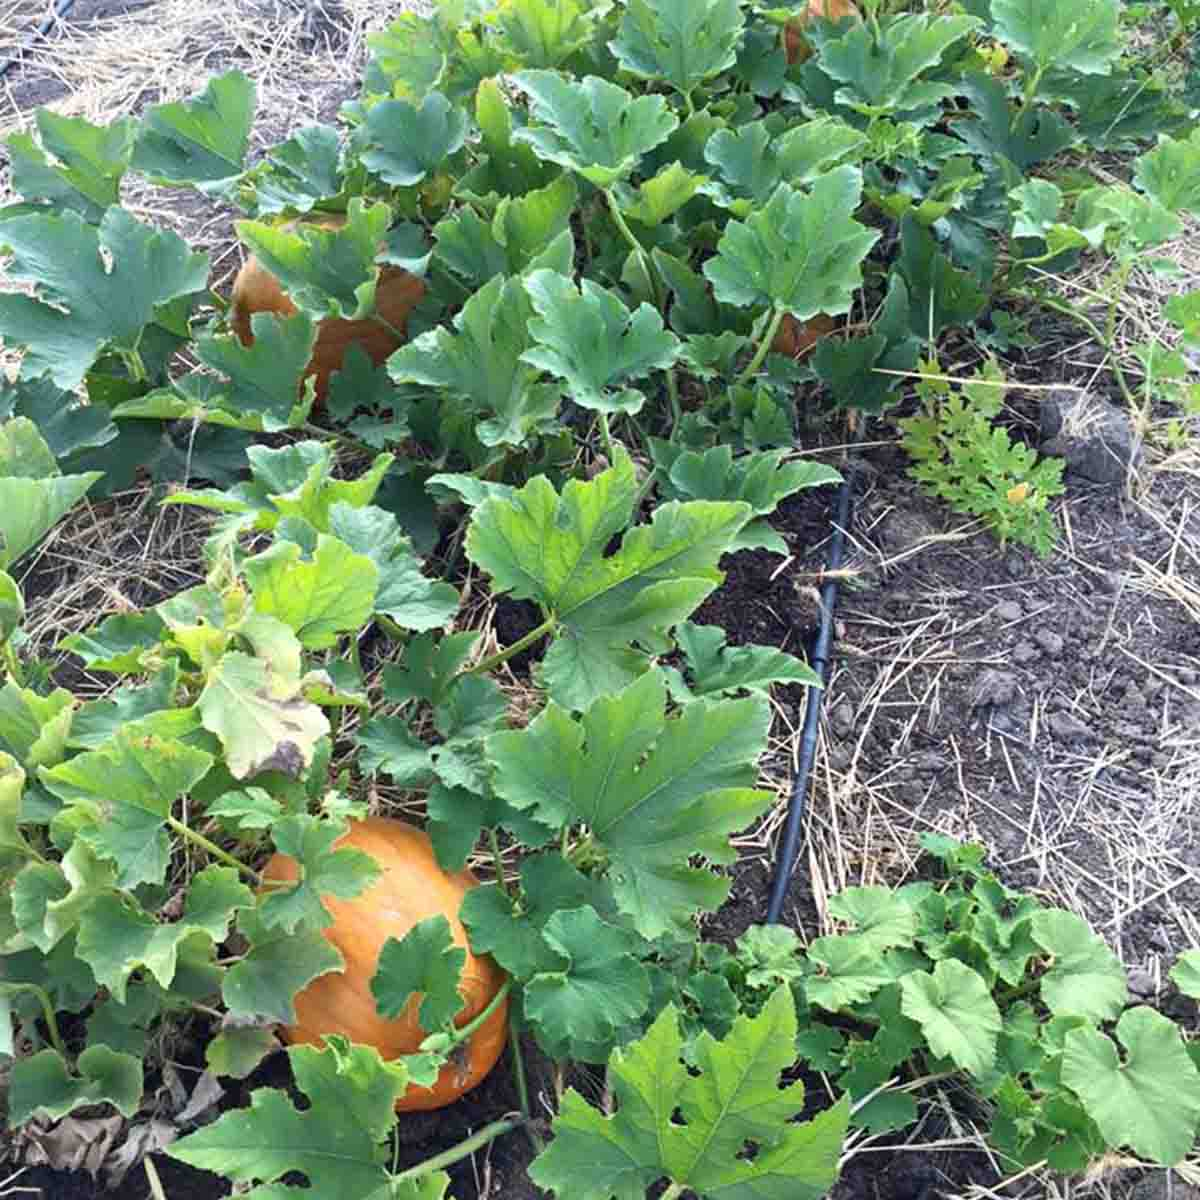 A few pumpkins growing in the garden